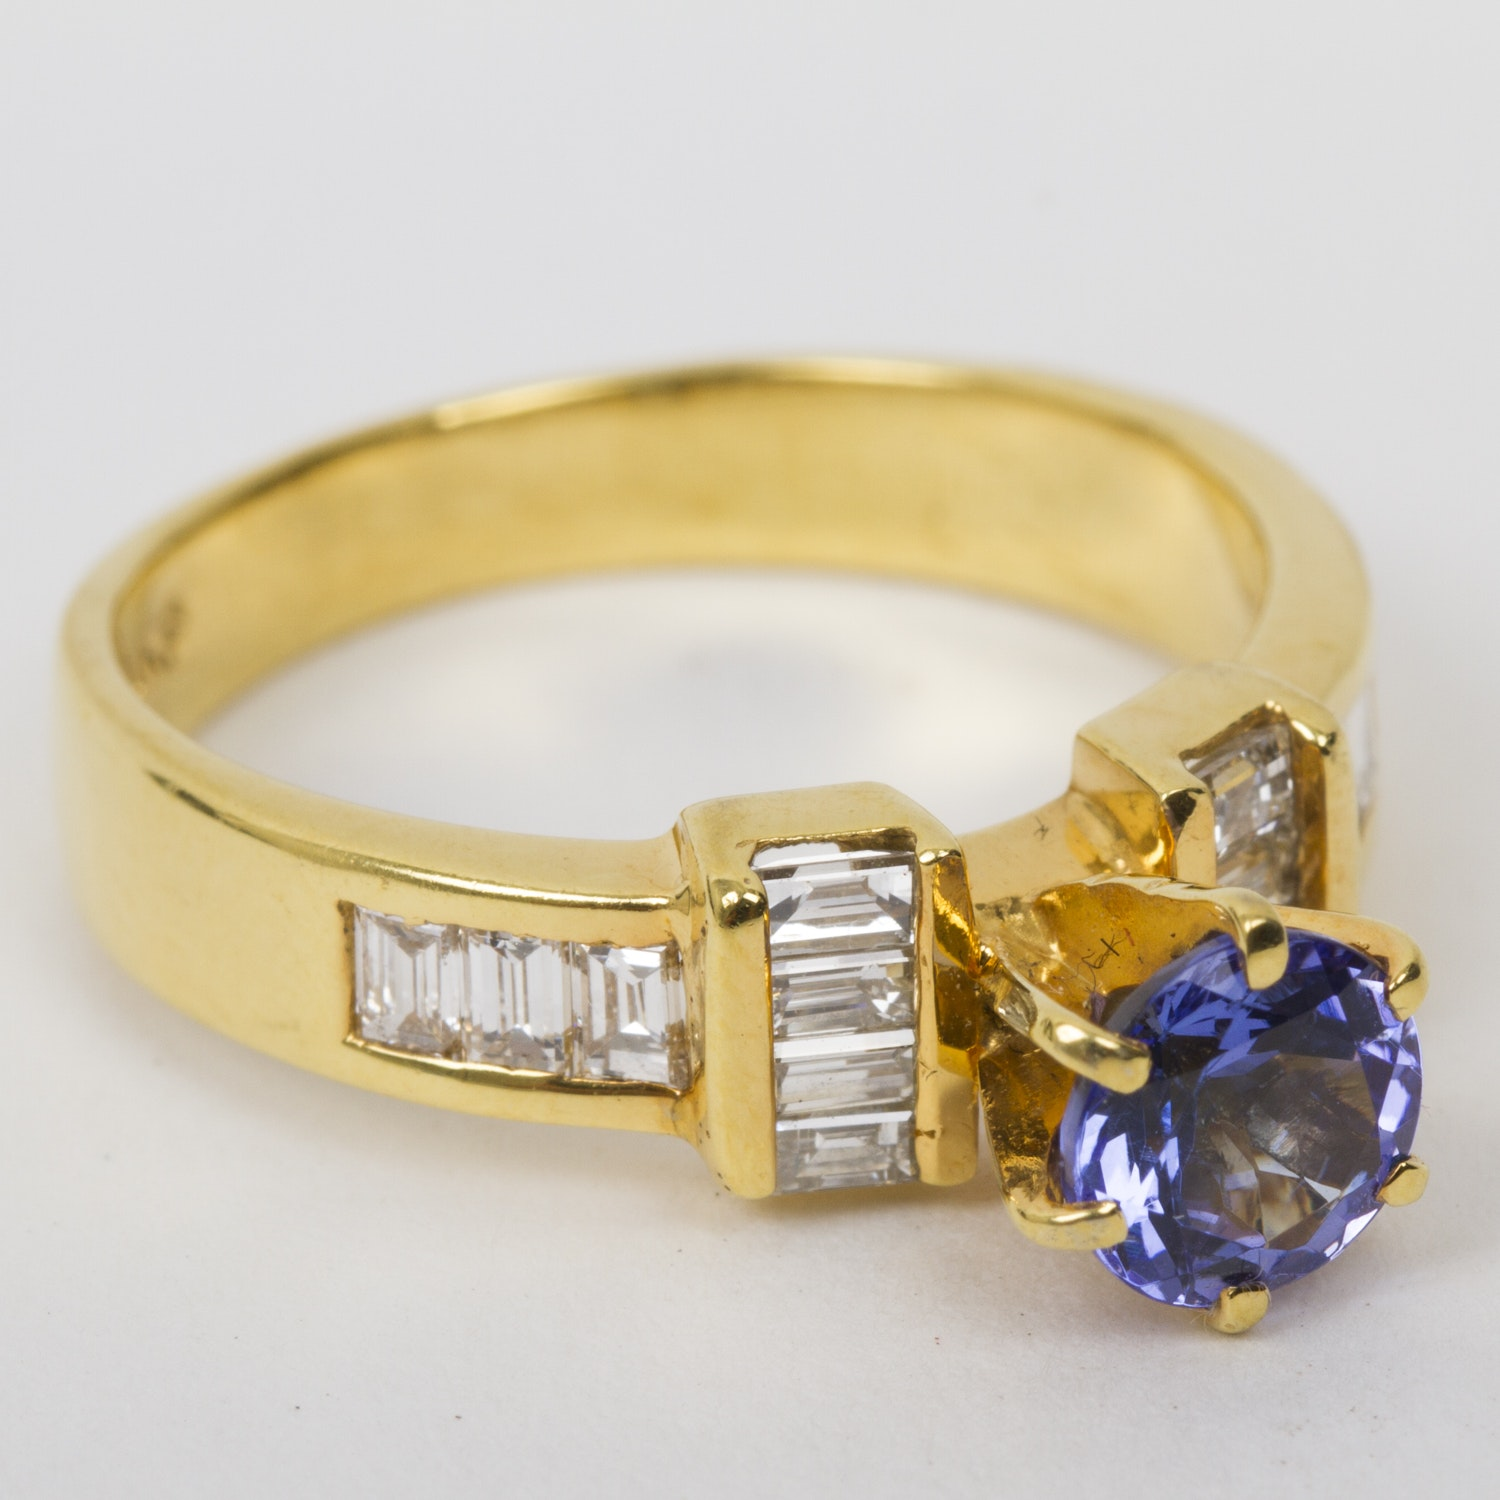 Nyman 18K Yellow Gold, Tanzanite, and Tanzanite Ring